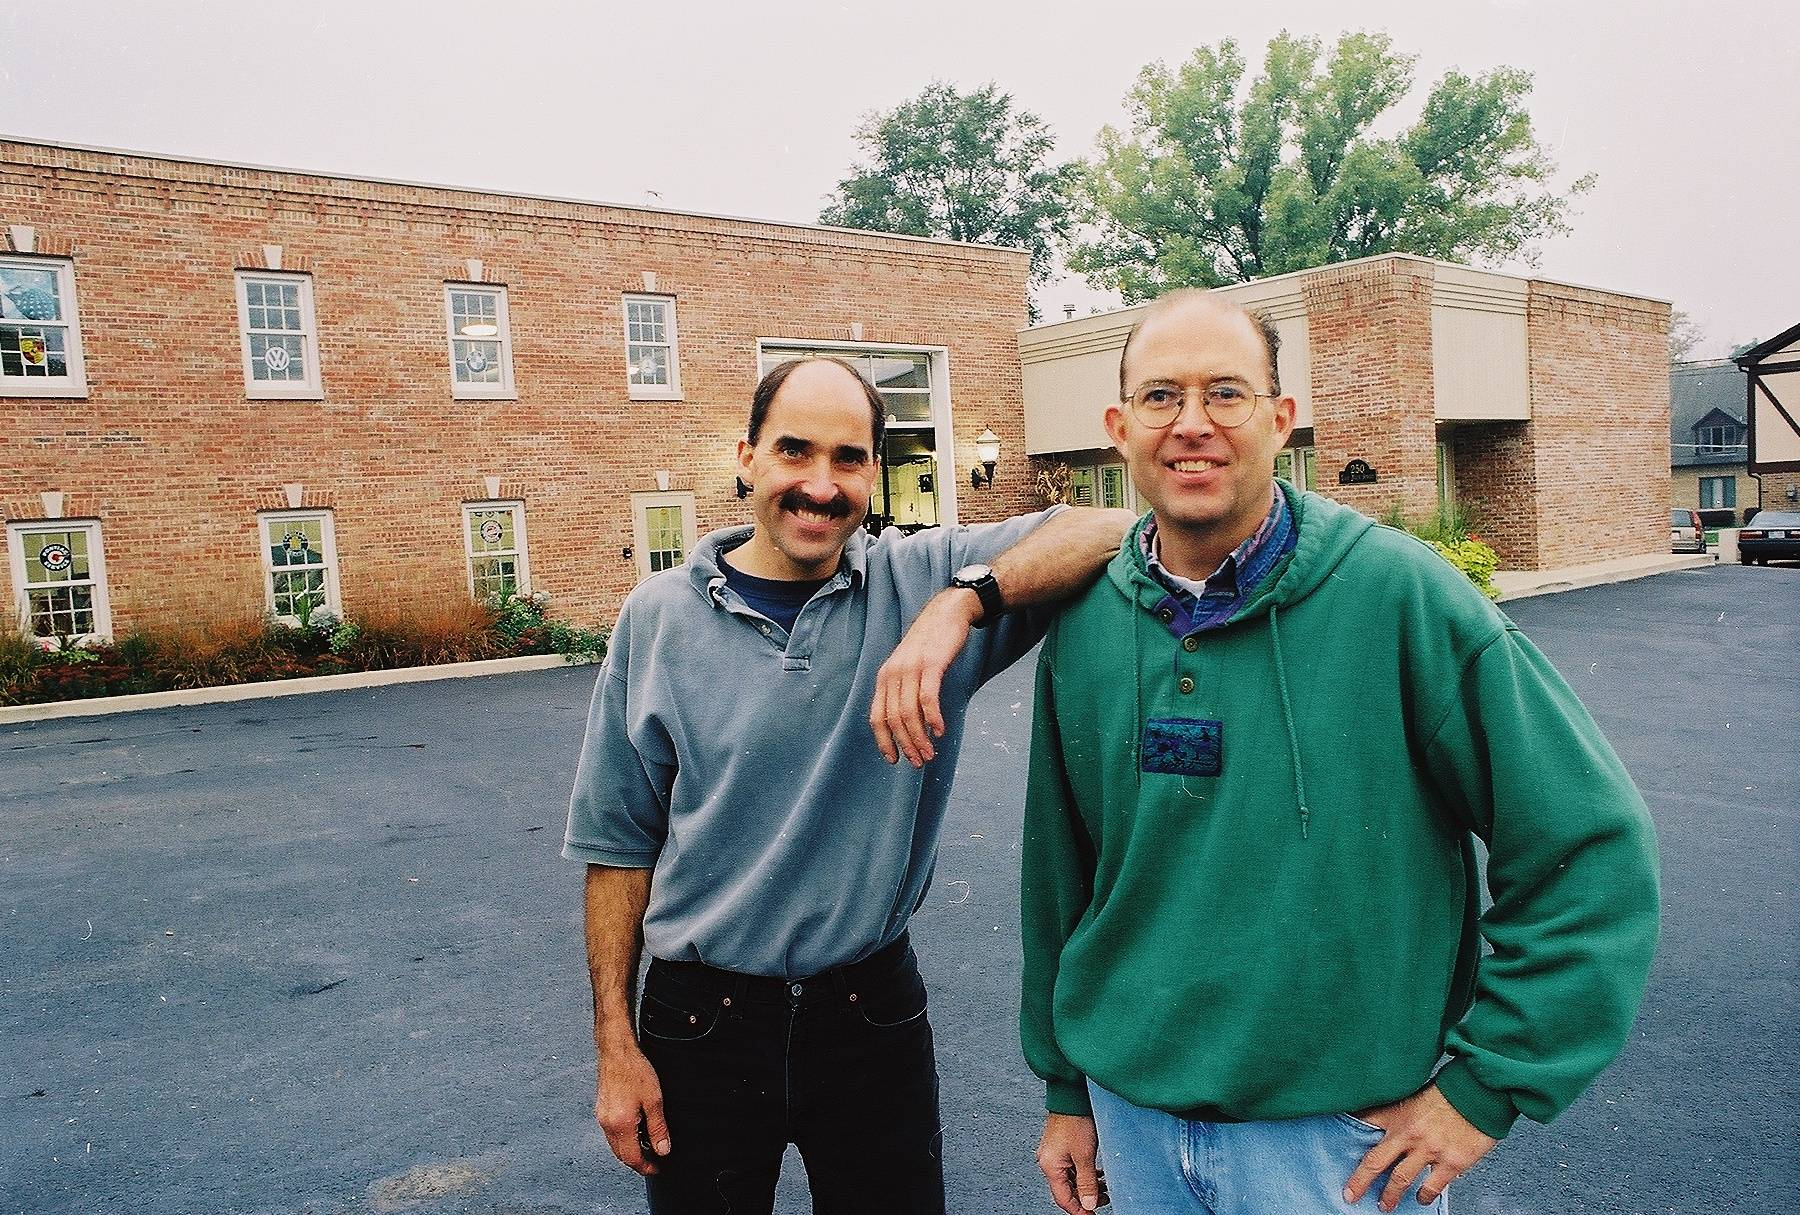 Twin Brothers Steve (left) and Dave Hollis have owned and operated Hollis Brothers Auto Repair since 1973 in downtown Barrington.